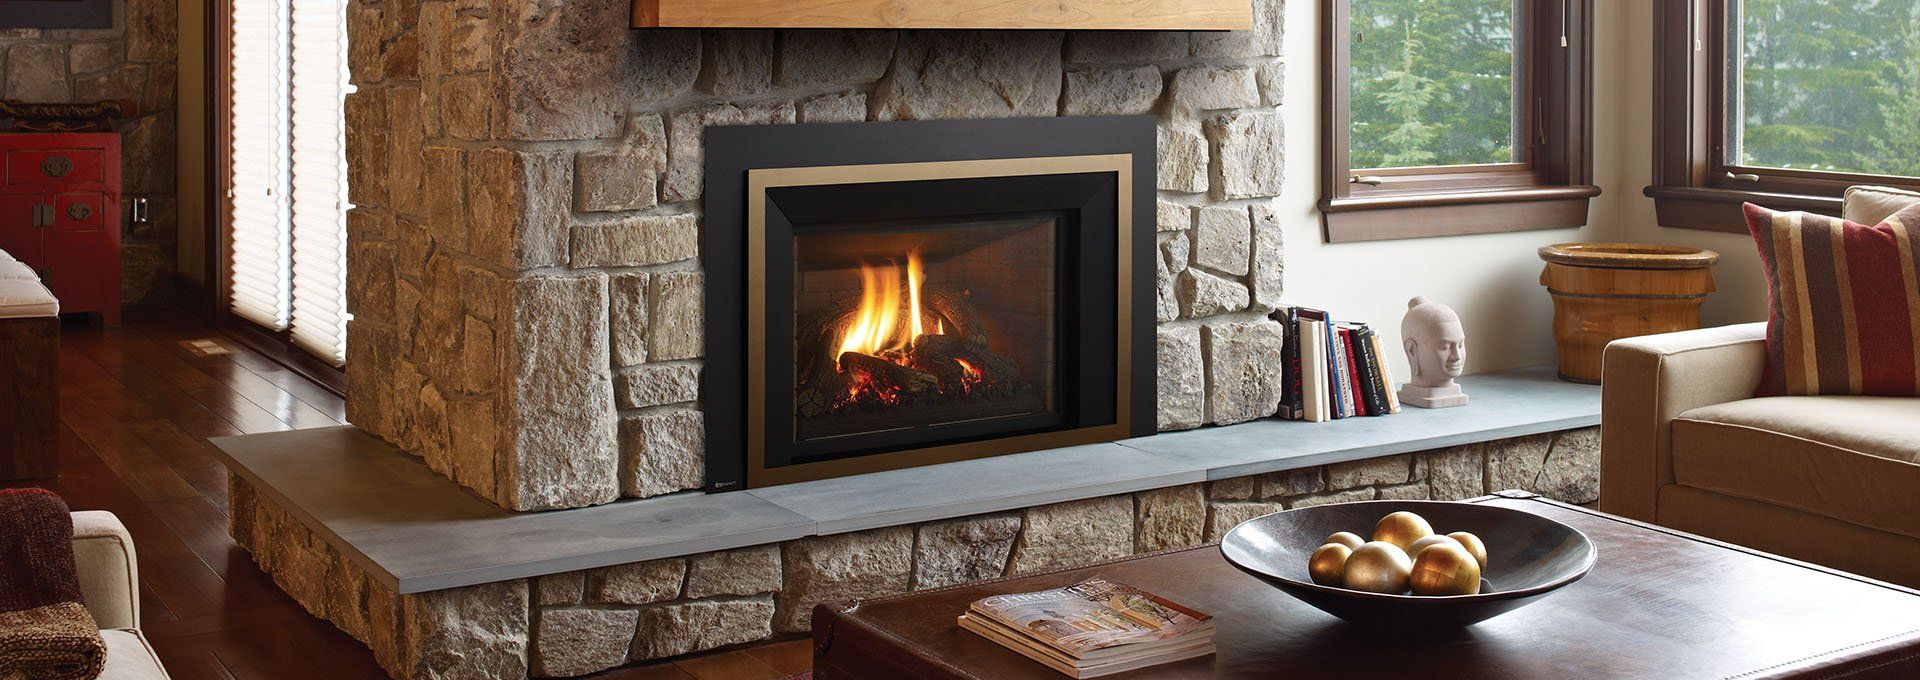 Install Gas Fireplace In Existing Home Gas Fireplace Inserts | Fireplaces | Robbinsville, Nj